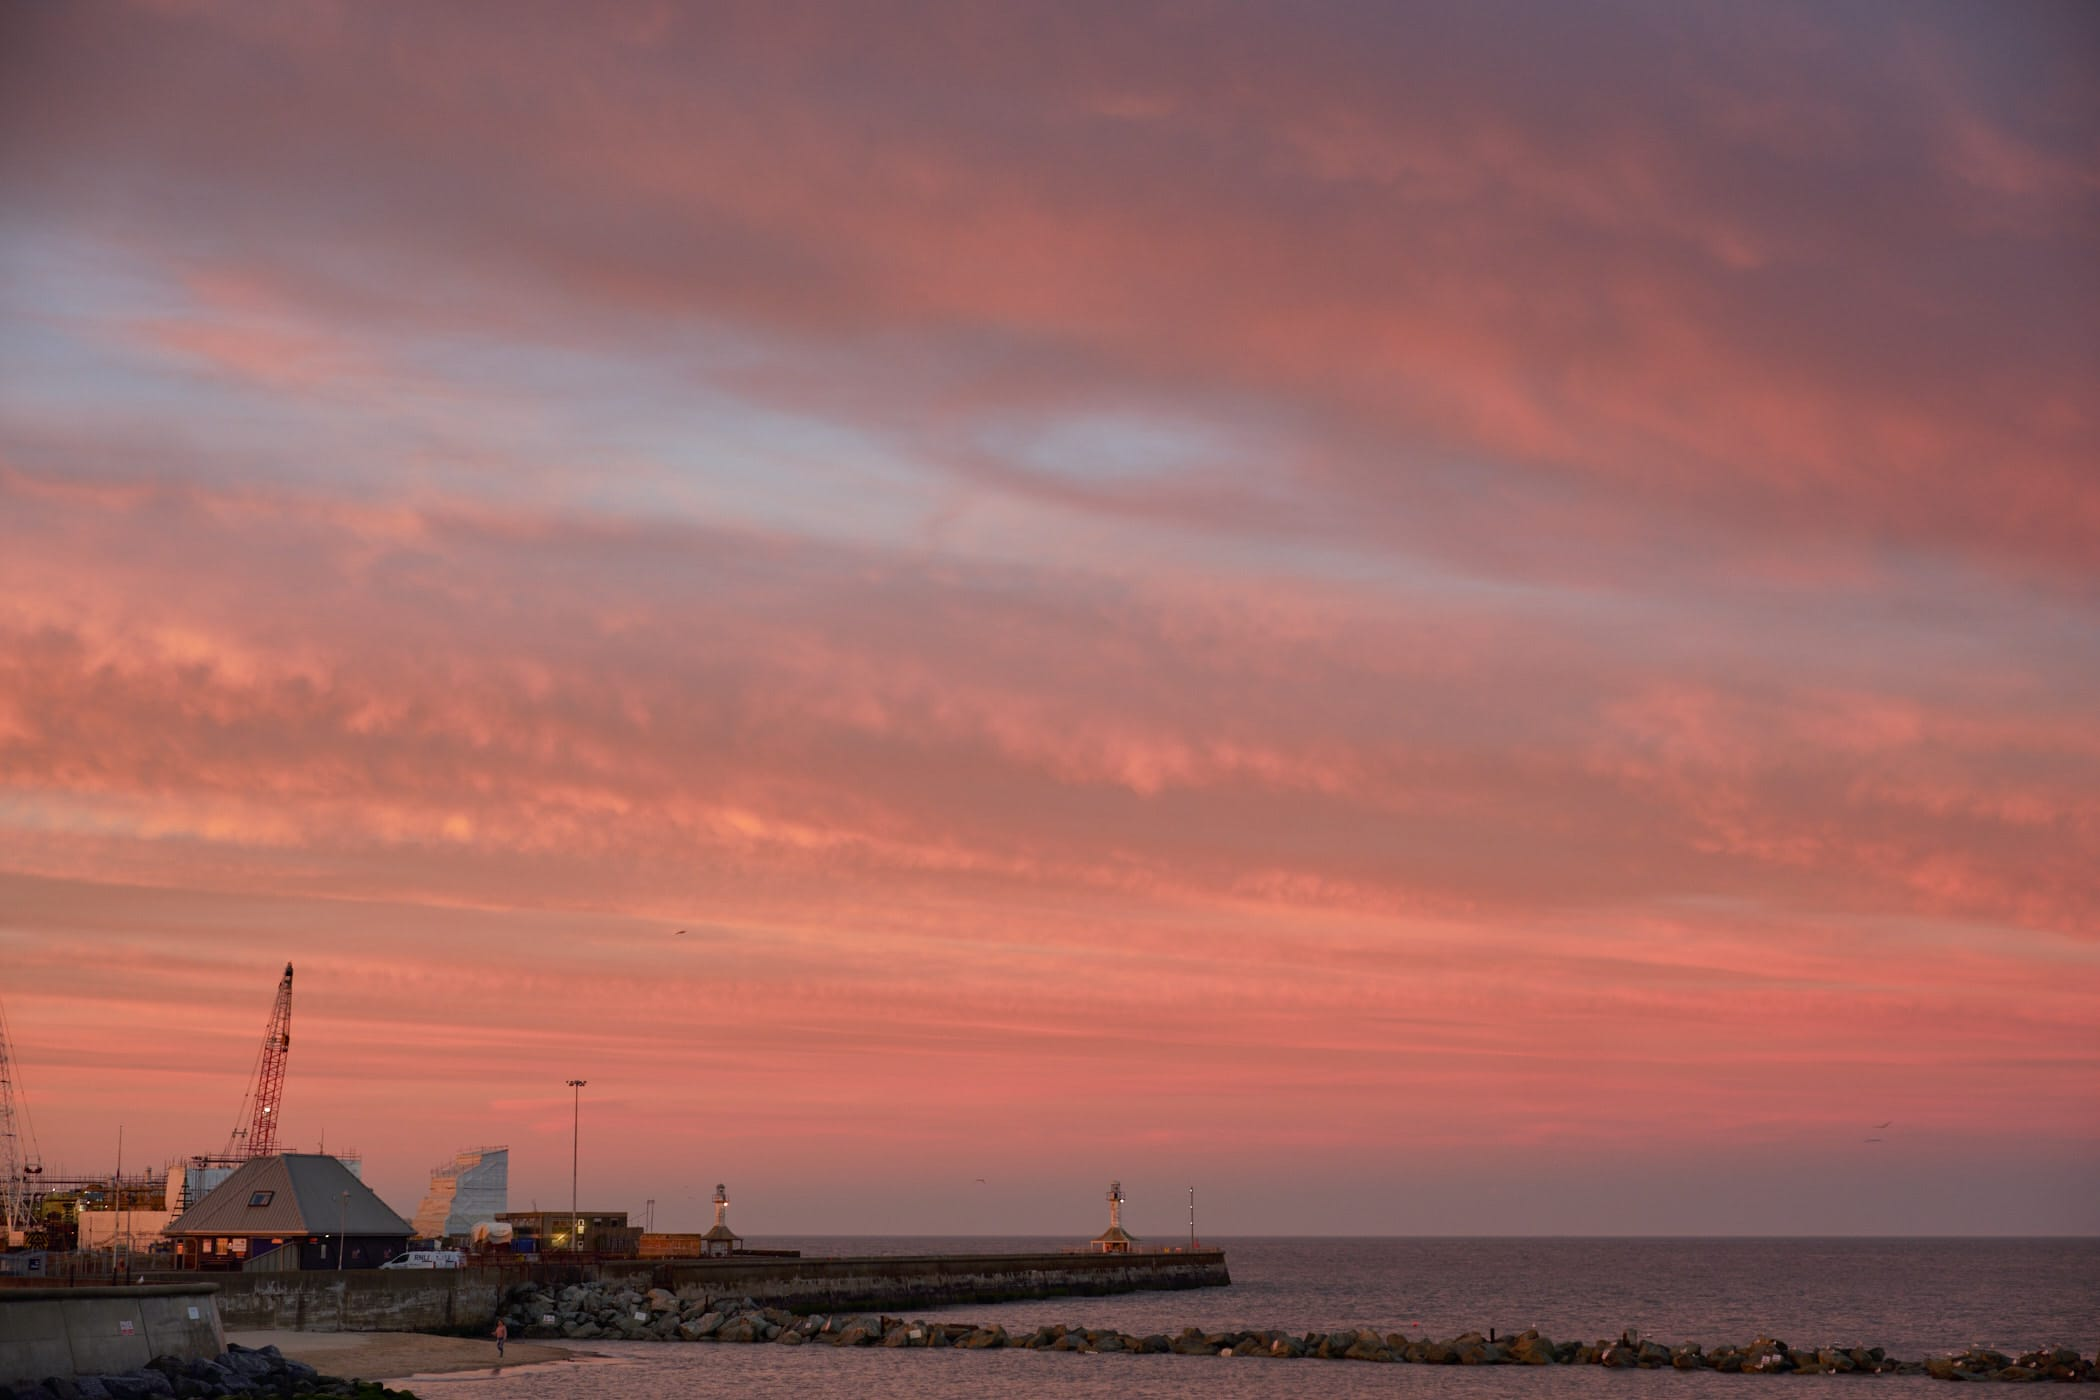 sunset clouds over Lowestoft harbour entrance